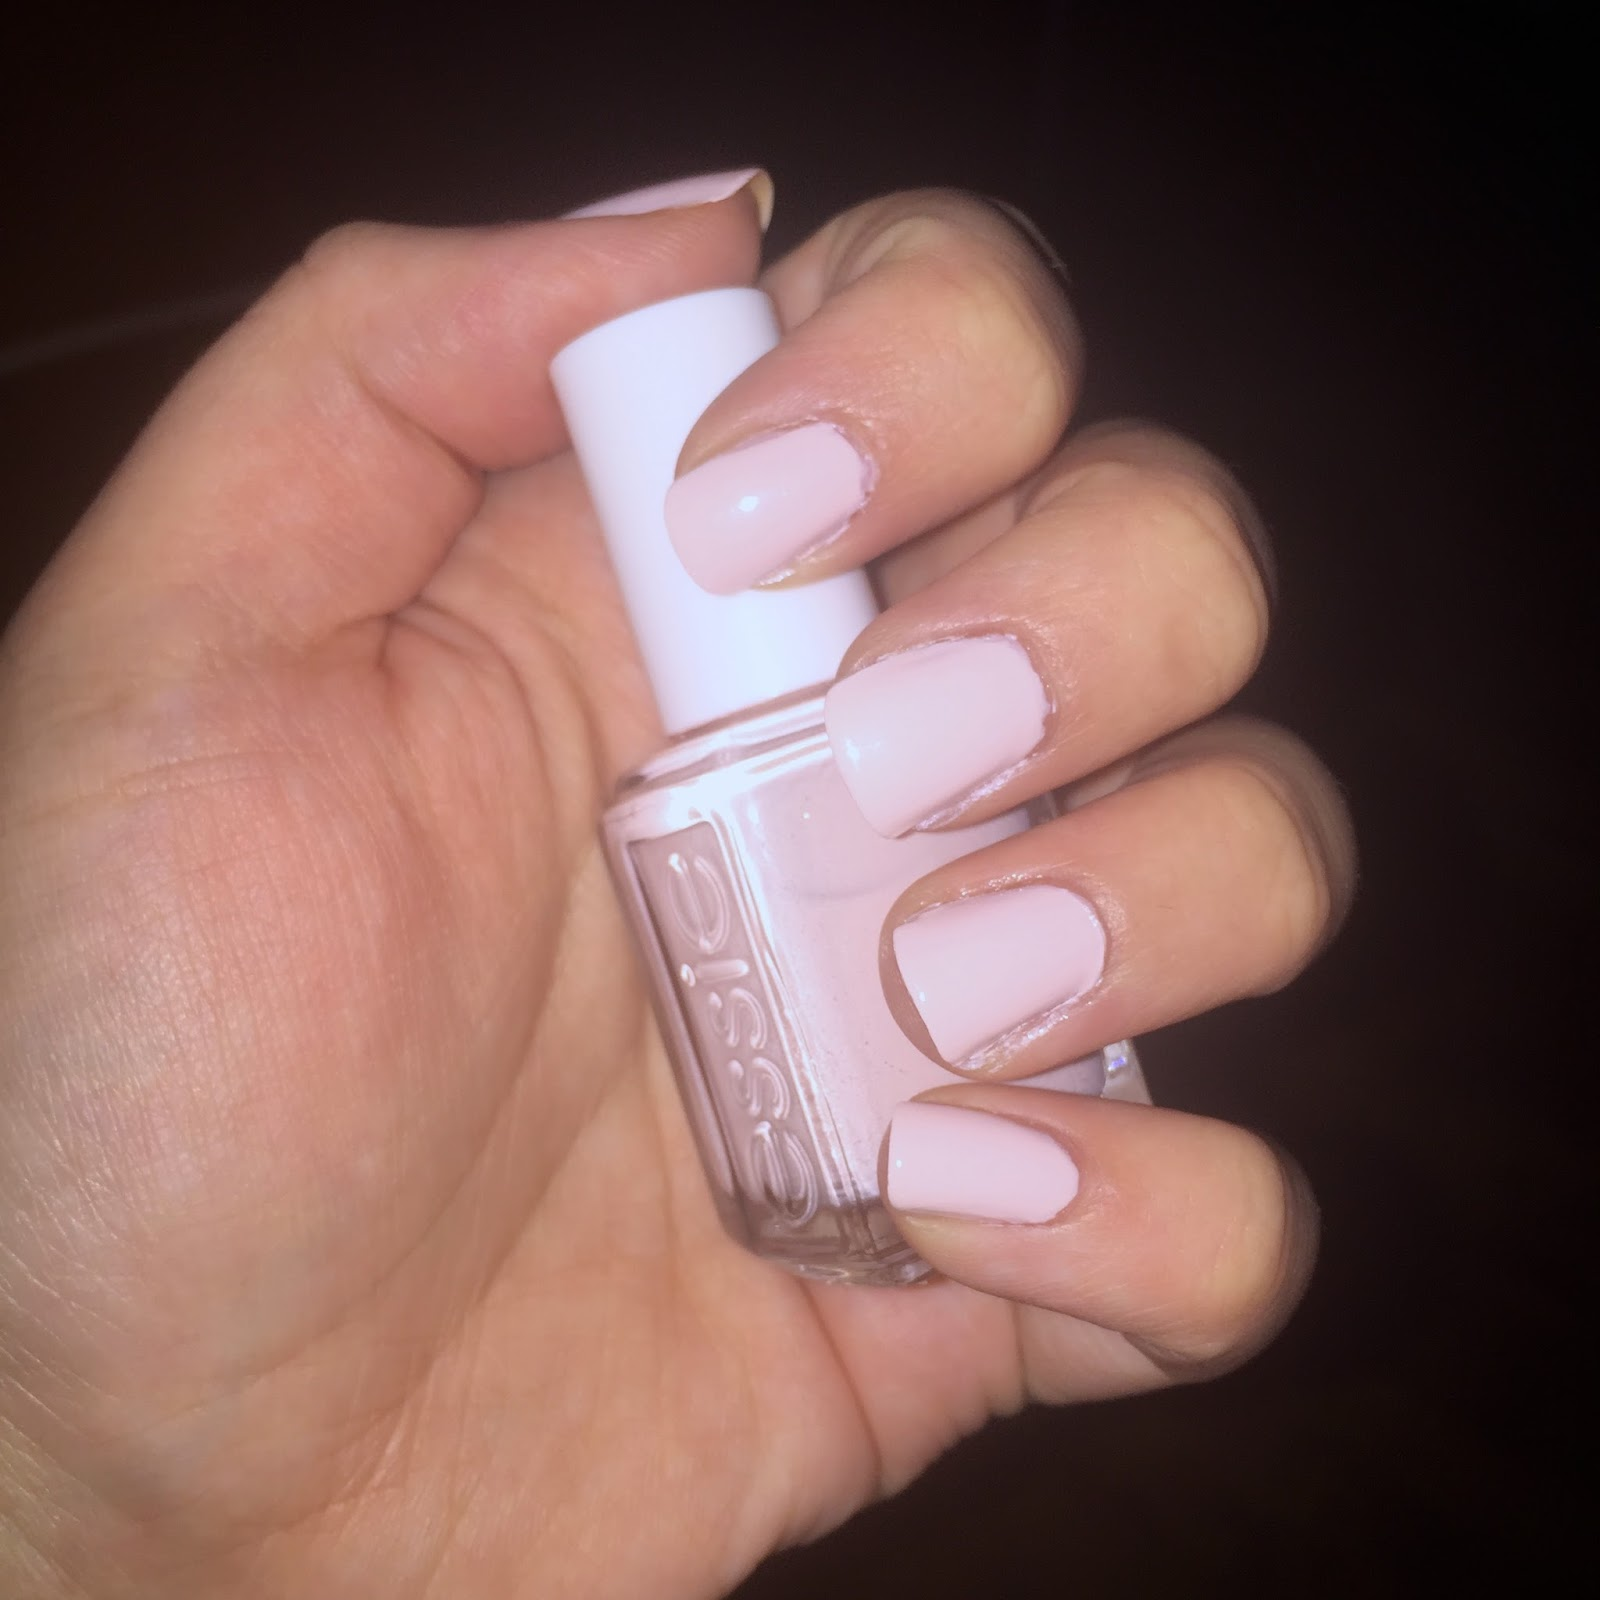 NOTD essie romper room the best pale pink nail polish